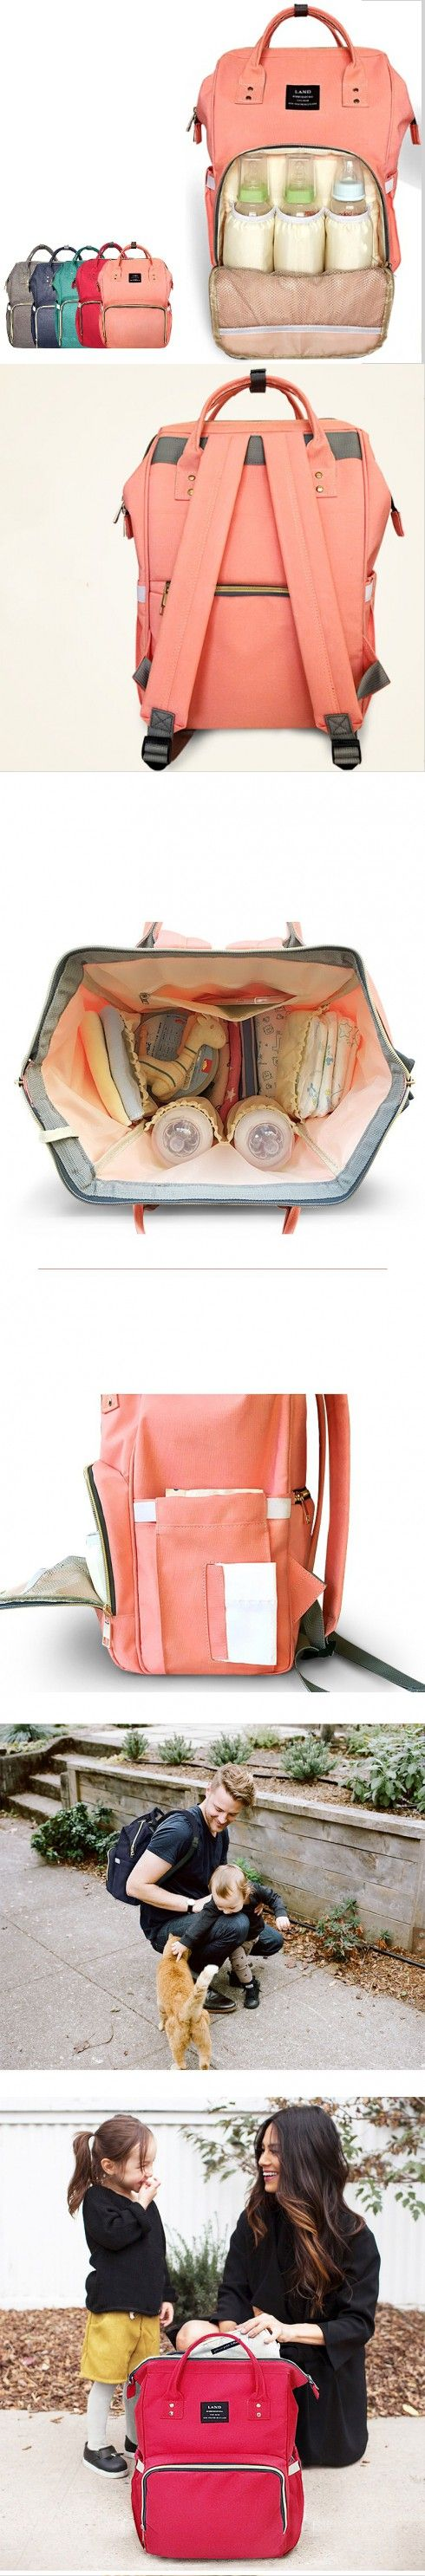 Fashion Mummy Maternity Nappy Bag Brand Large Capacity Baby Bag Travel Backpack Desiger Nursing Bag for Baby Care $44.96